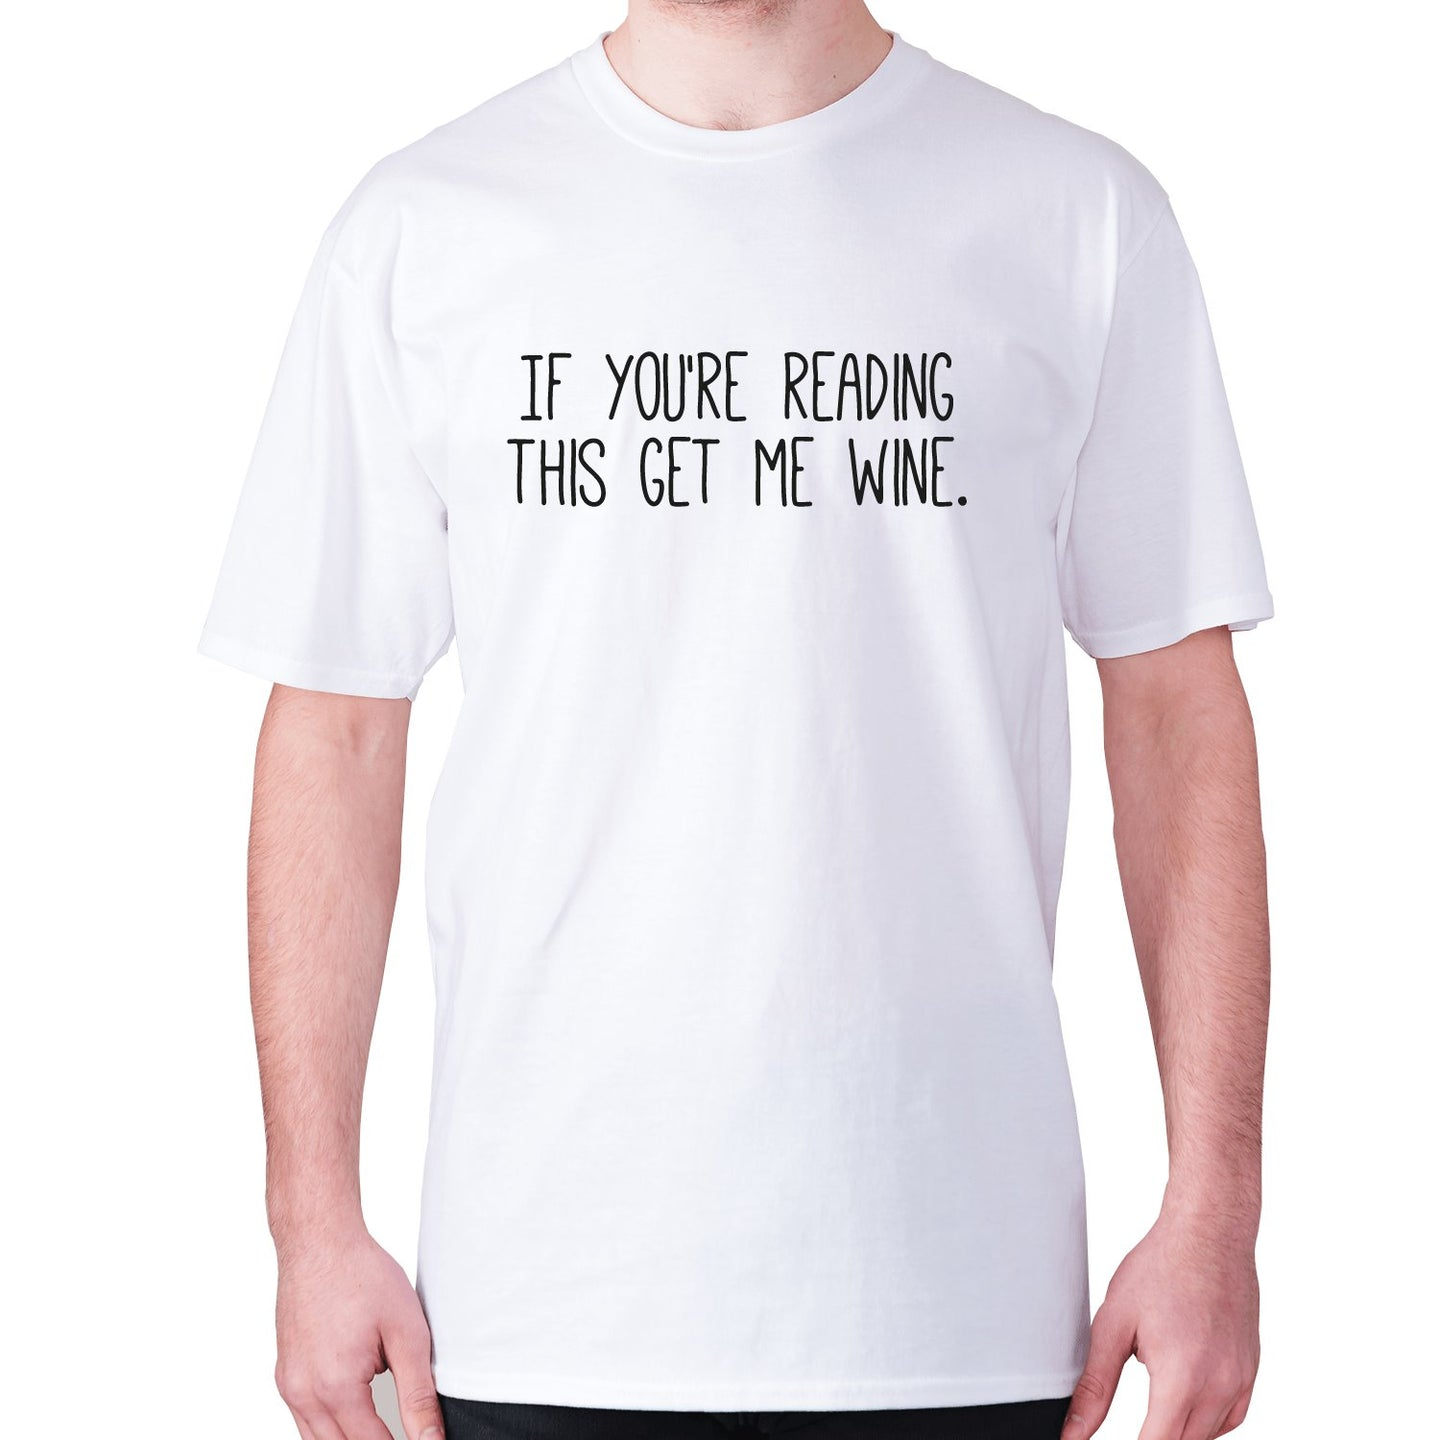 If you're reading this get me wine - men's premium t-shirt - White / S - Graphic Gear